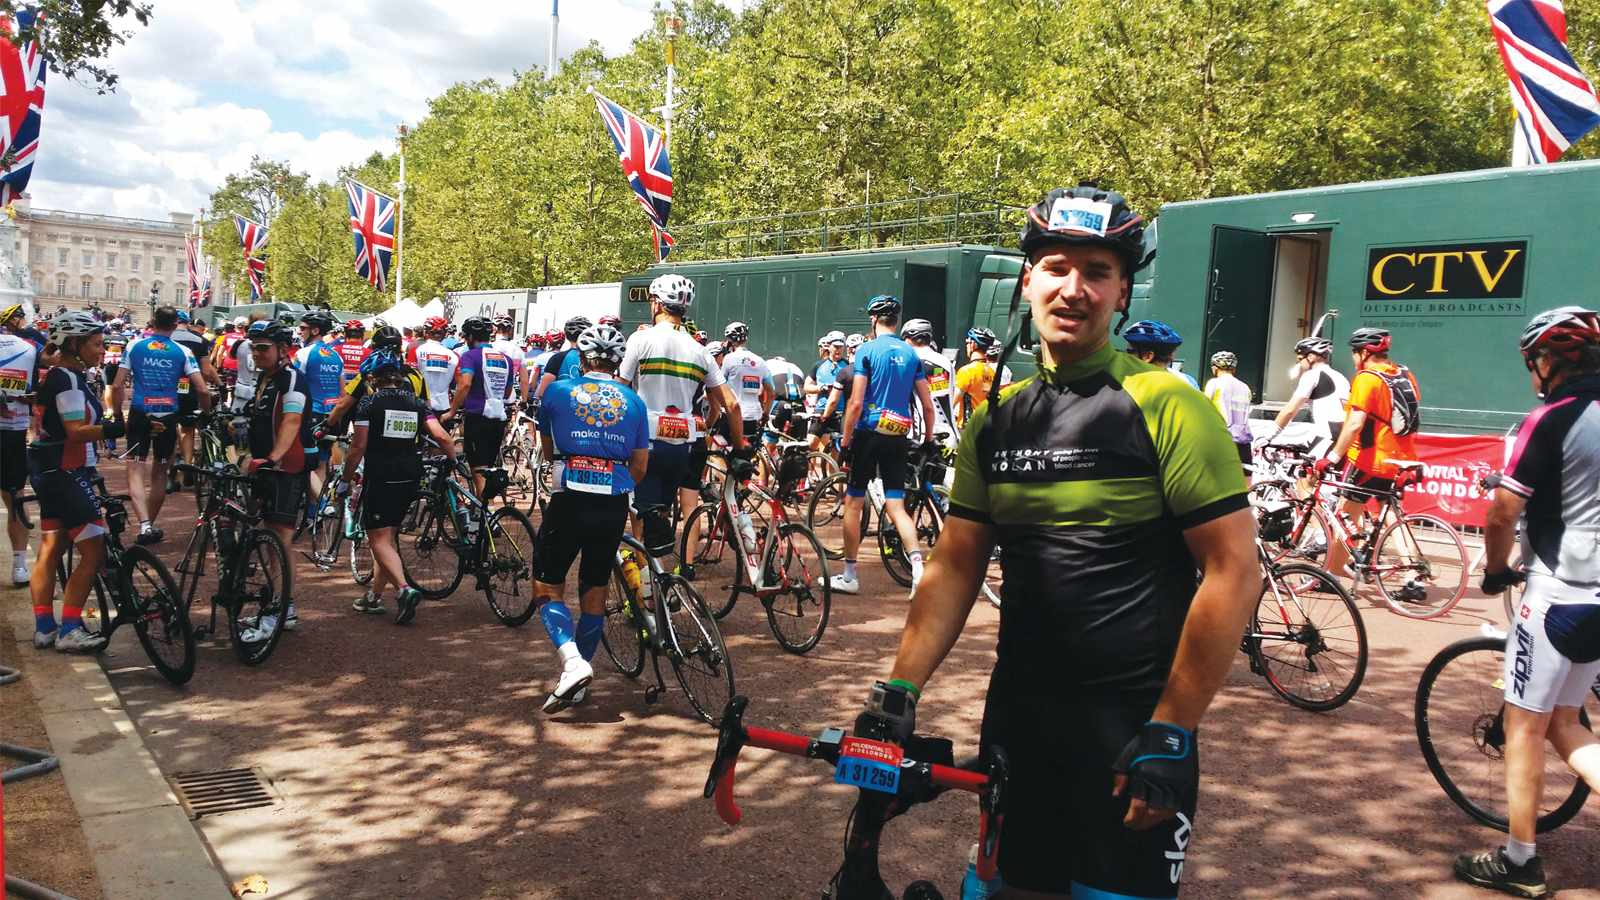 Lukas is aiming for Ride London again in 2017